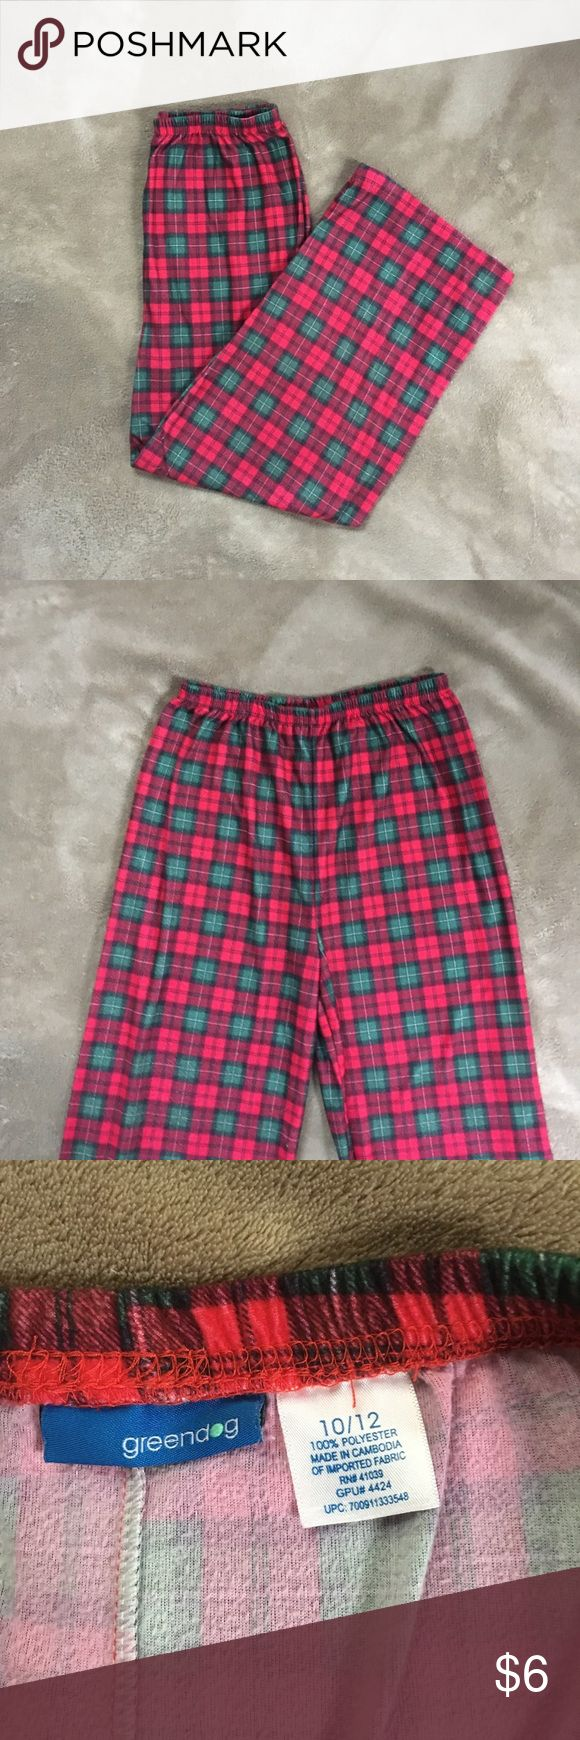 Kid's holiday pajama bottoms Super soft kid's pajama bottoms in a festive red and green plaid. Flannel-like texture, they are warm but not very thick. Gently used condition. Runs a little small, I'd say this would be more like an 8/10.  B Pajamas Pajama Bottoms